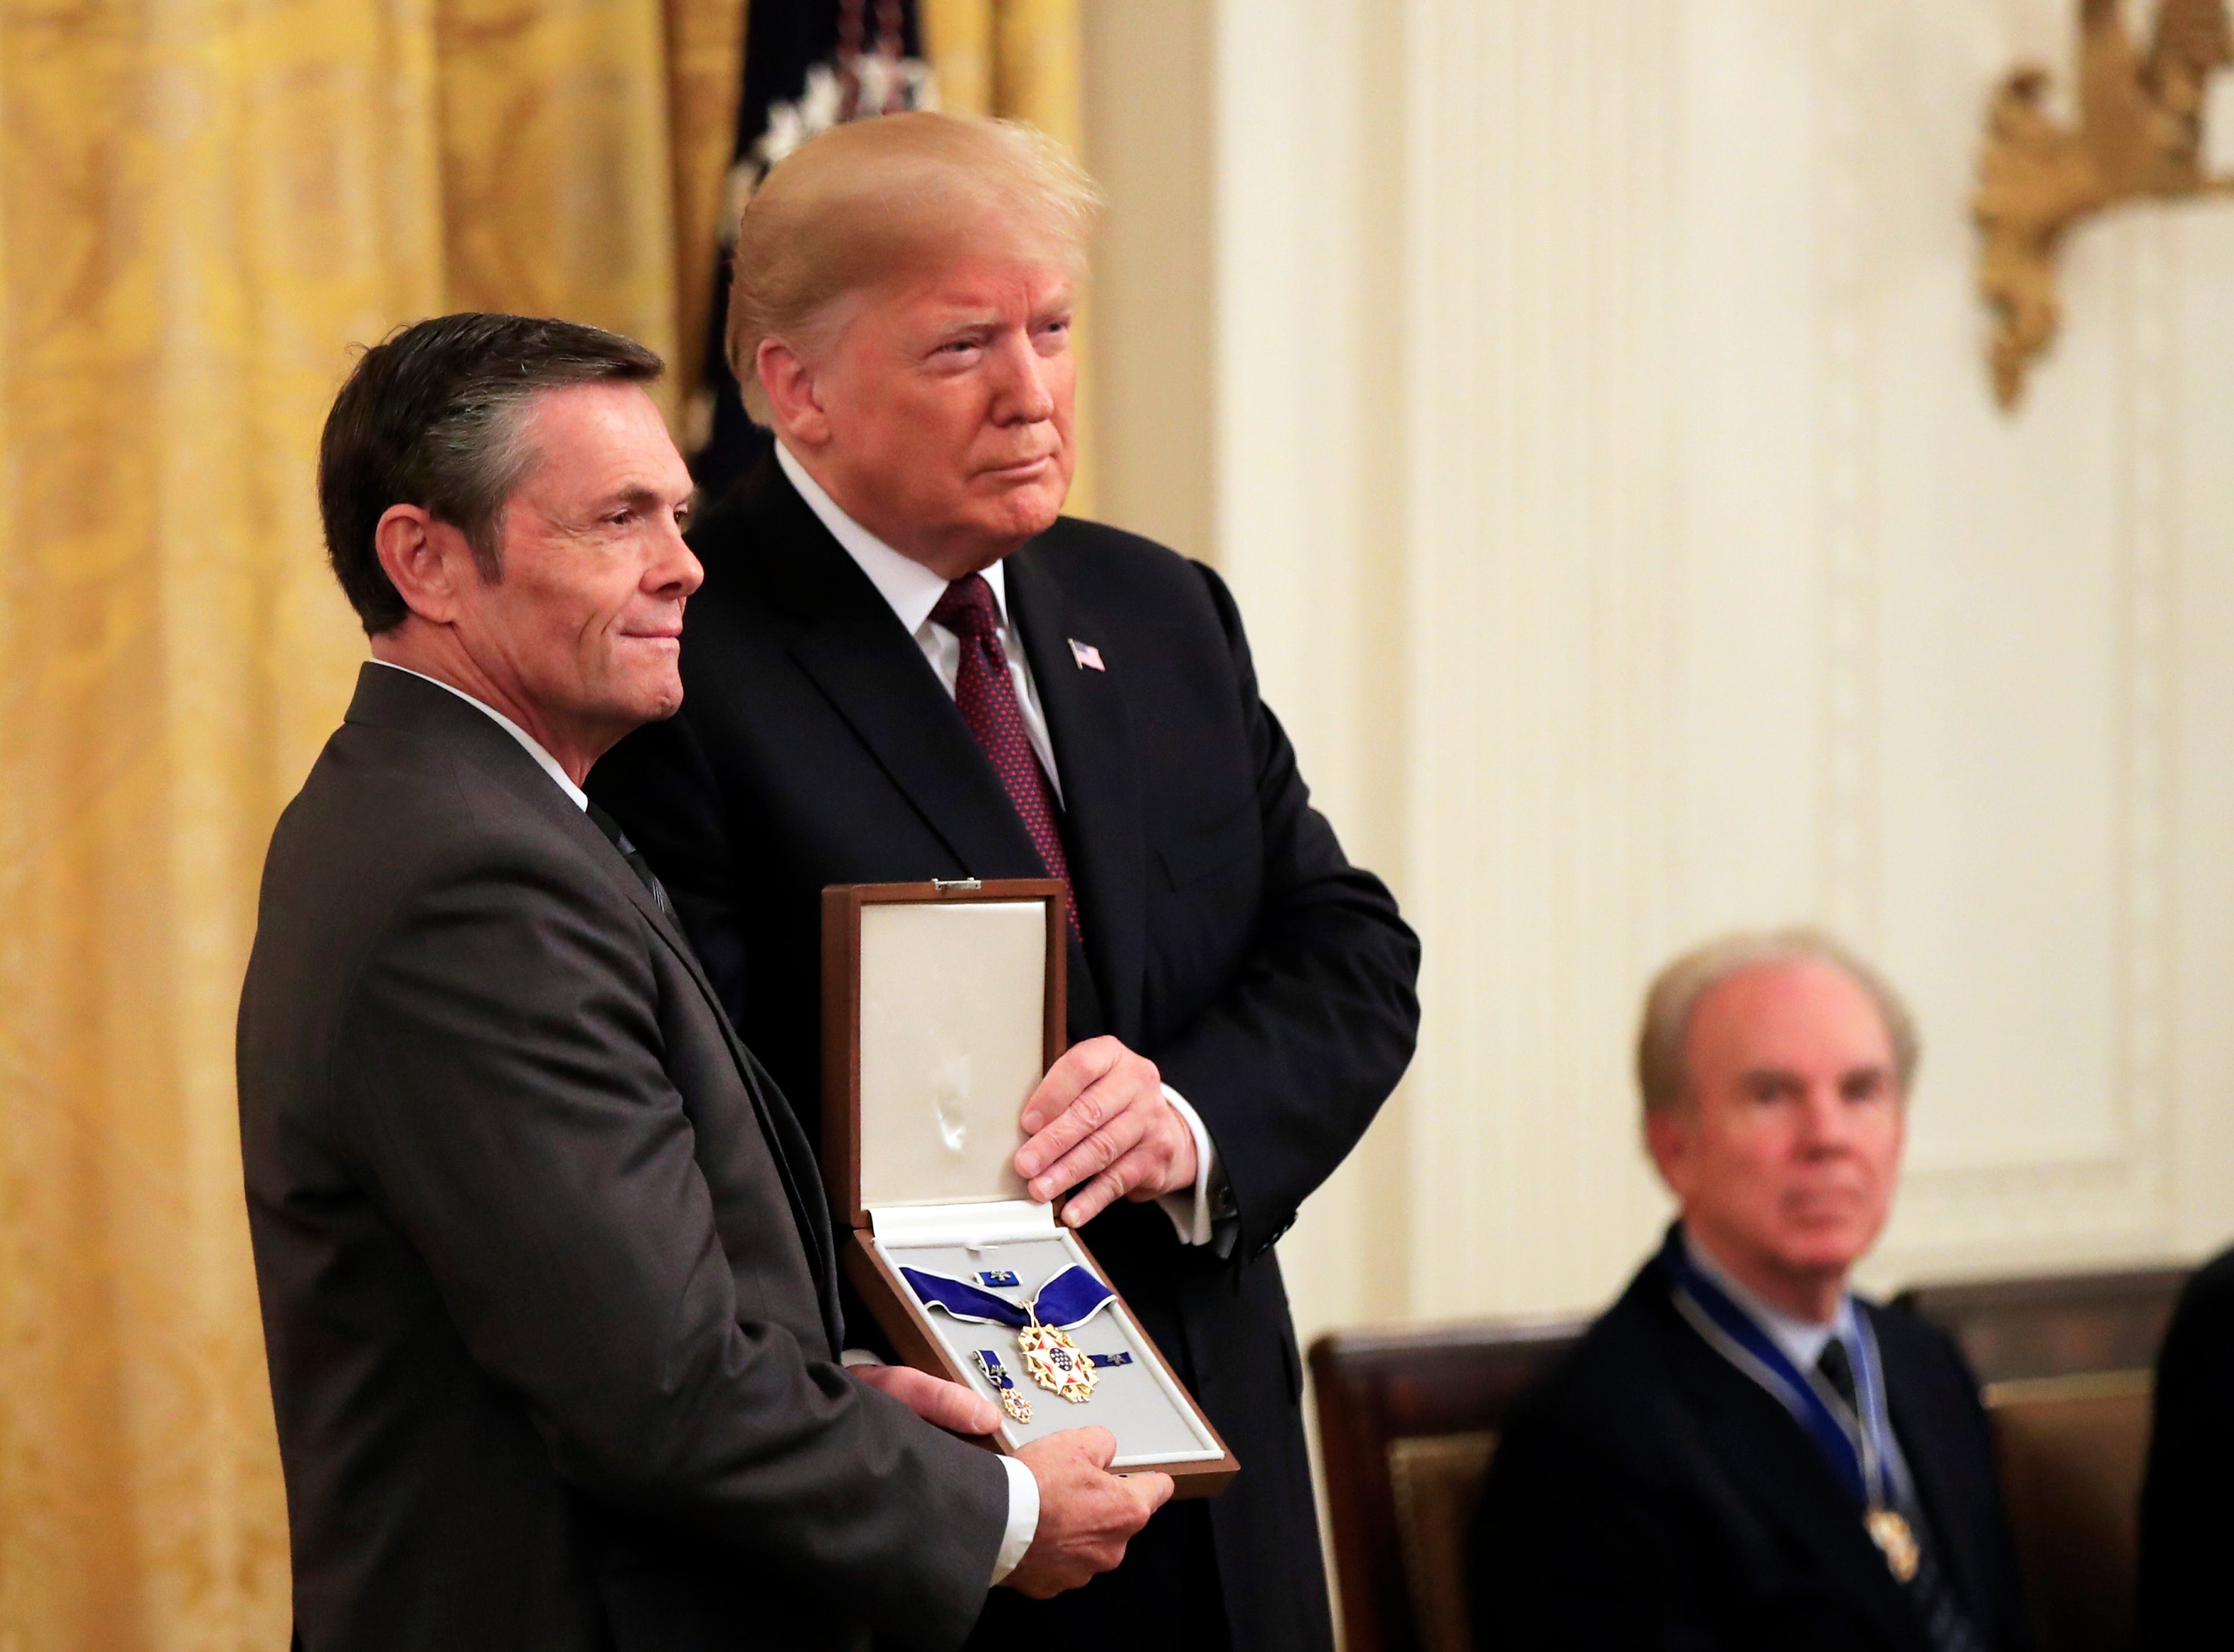 Thomas Stevens, grandson of Babe Ruth, accepts the Presidential Medal of Freedom on behalf of the Ruth family from President Donald Trump during a ceremony in the East Room of the White House in Washington, D.C., on Friday, Nov. 16, 2018.